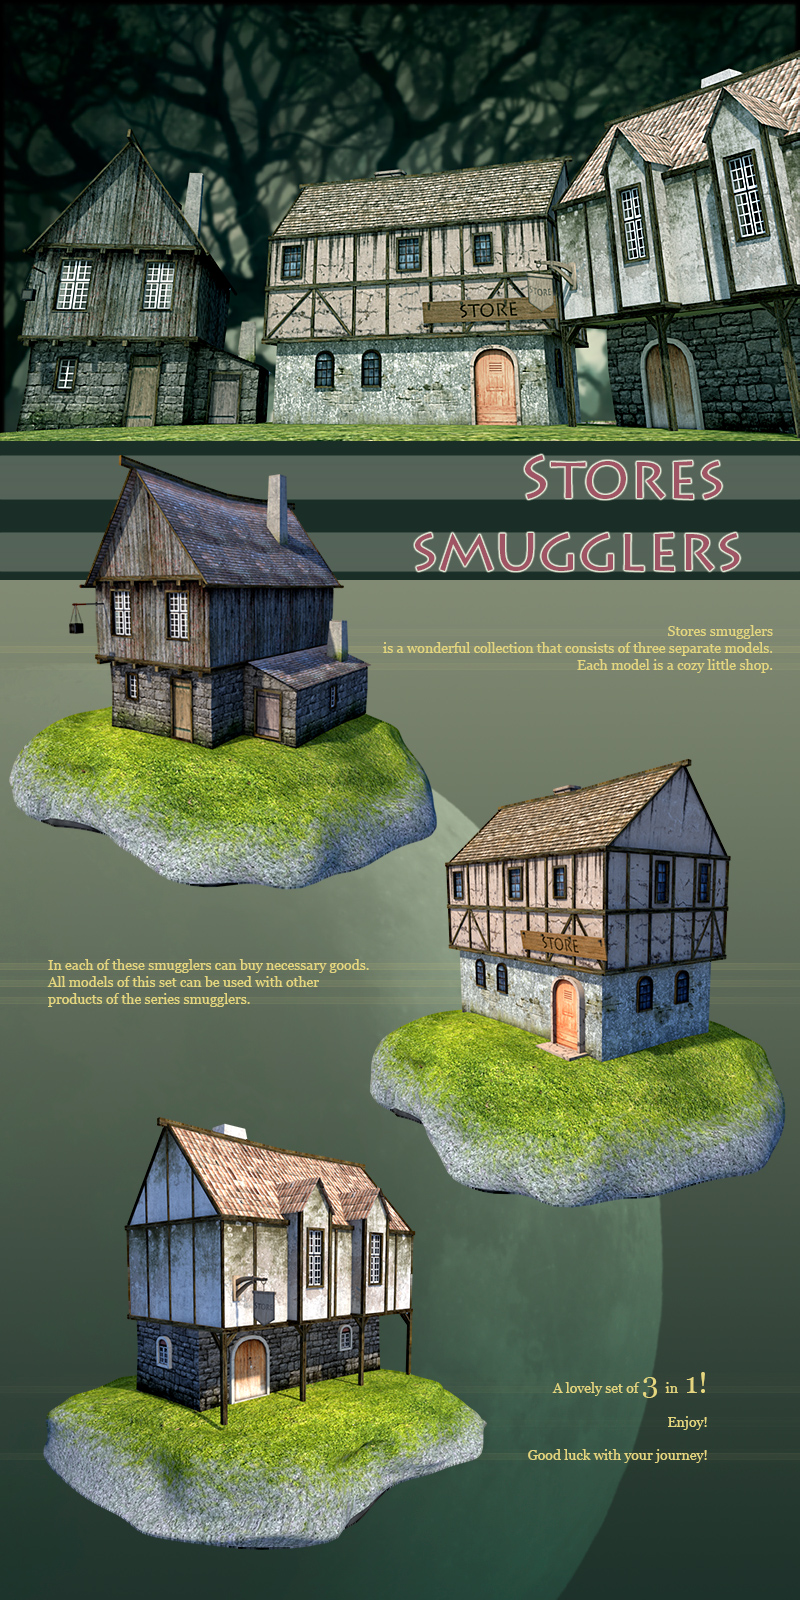 Stores smugglers